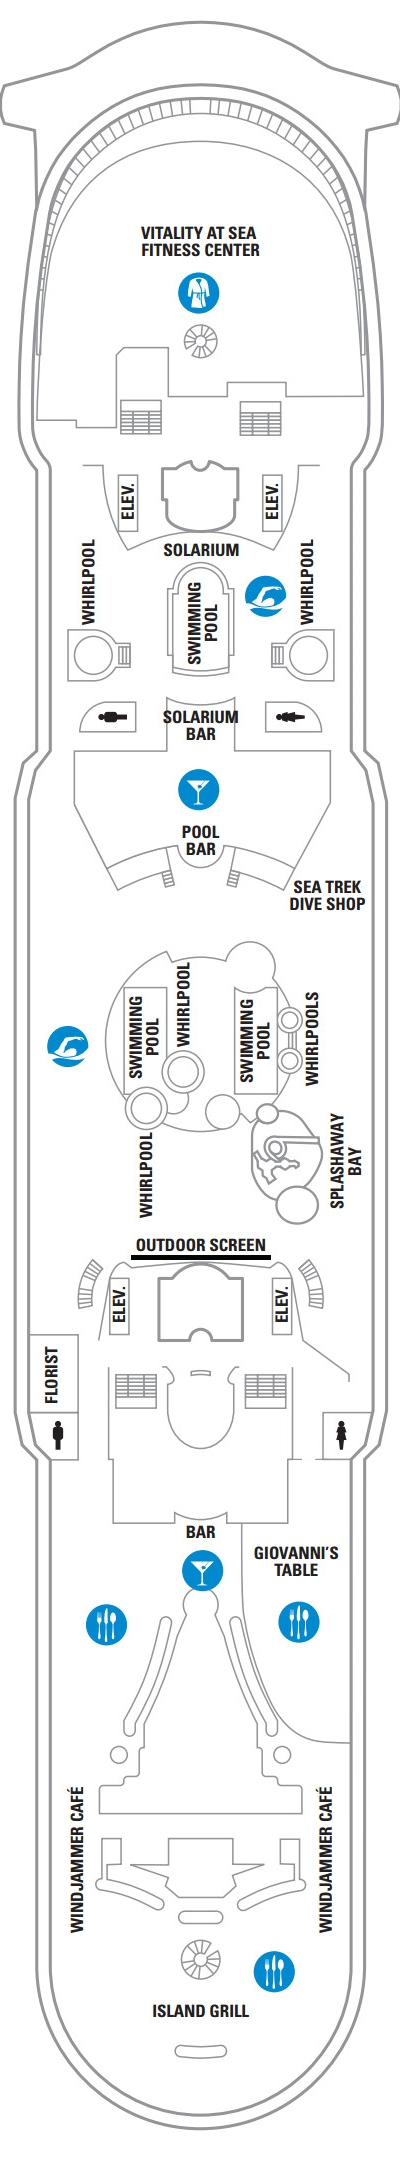 Adventure Of The Seas Deck 11 layout